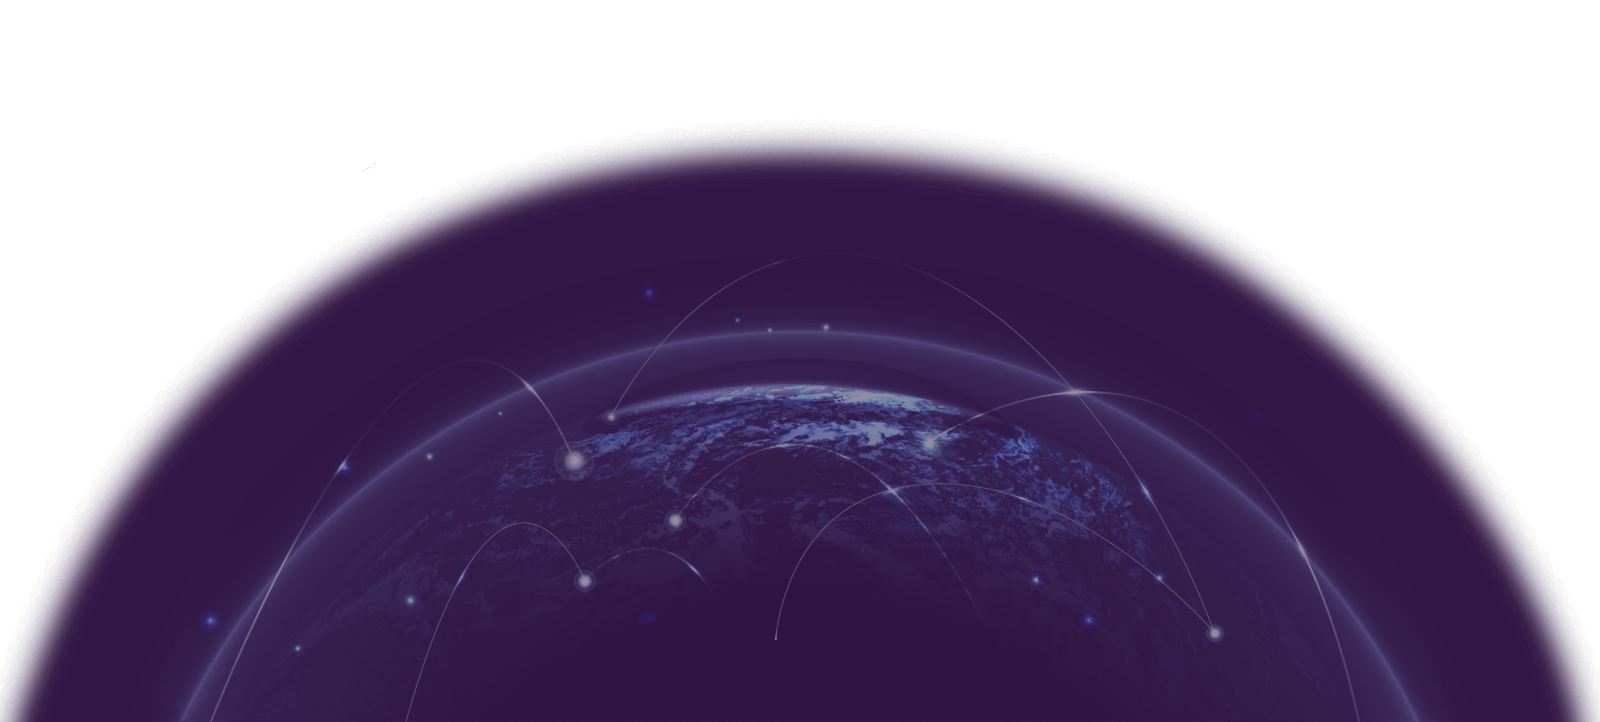 Full Service Marketing Agency Graphic Featuring Globe With Lines Showing Office Locations